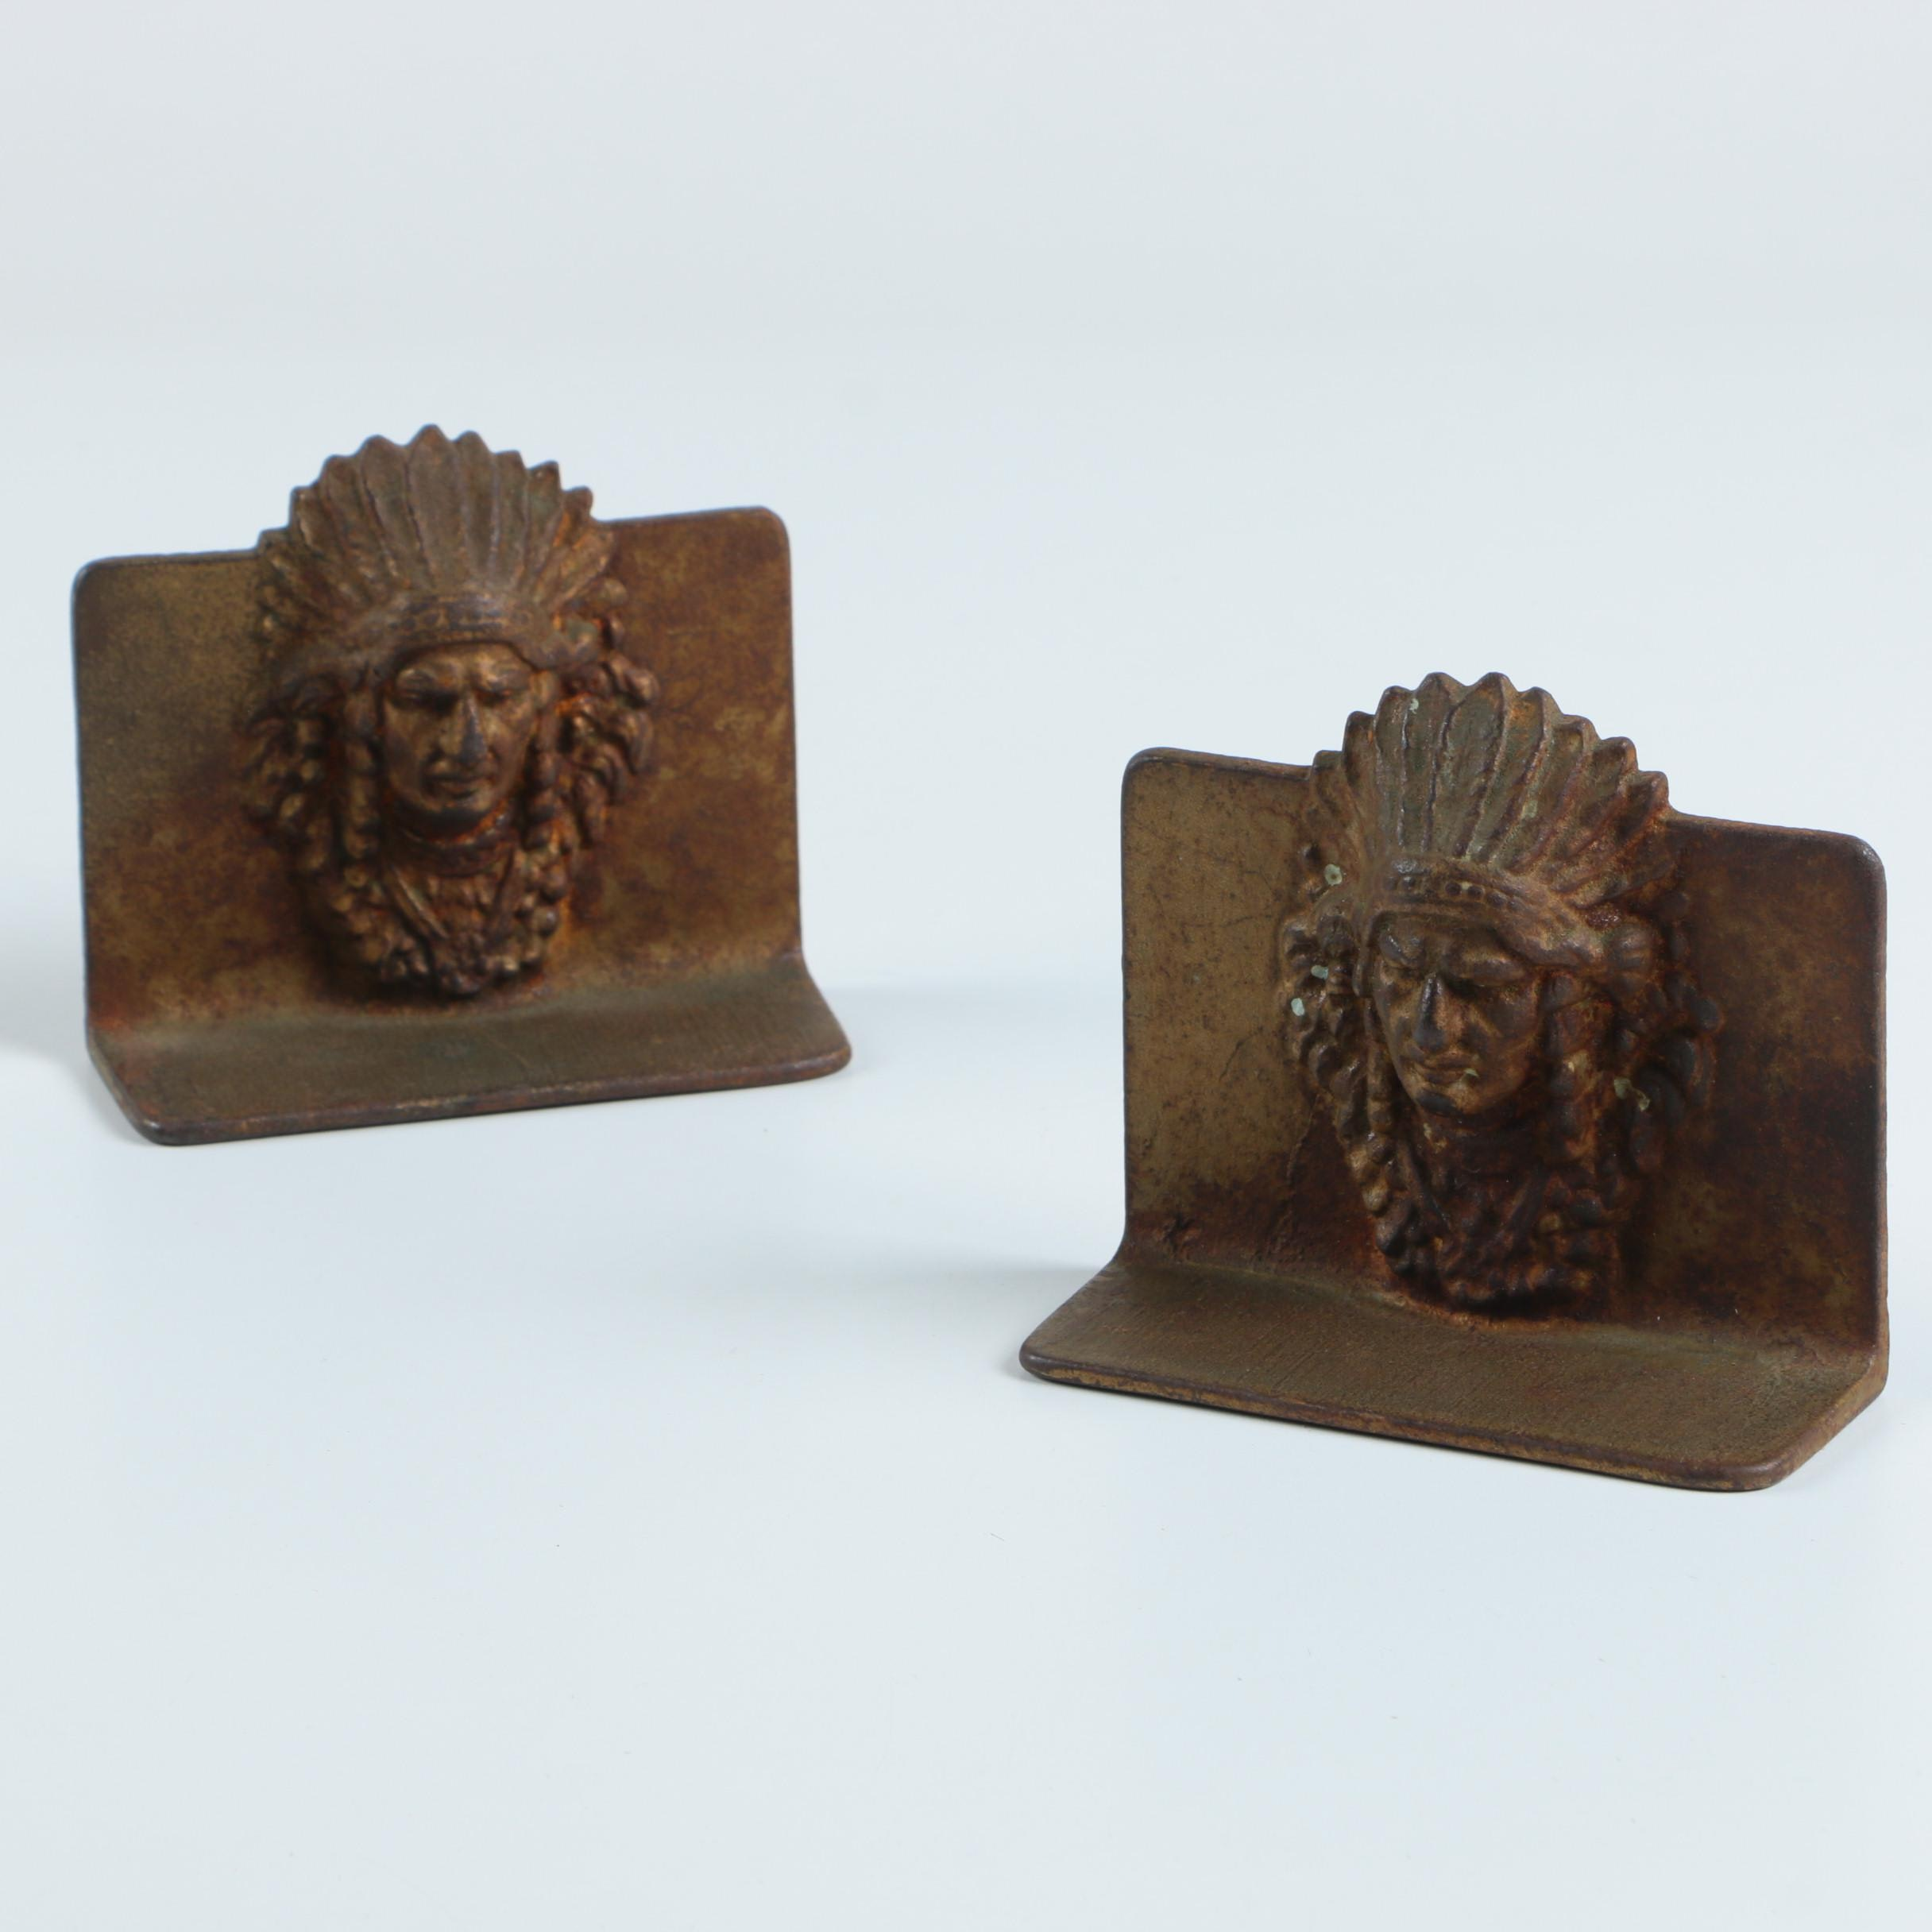 1920s Native American Style Bookends